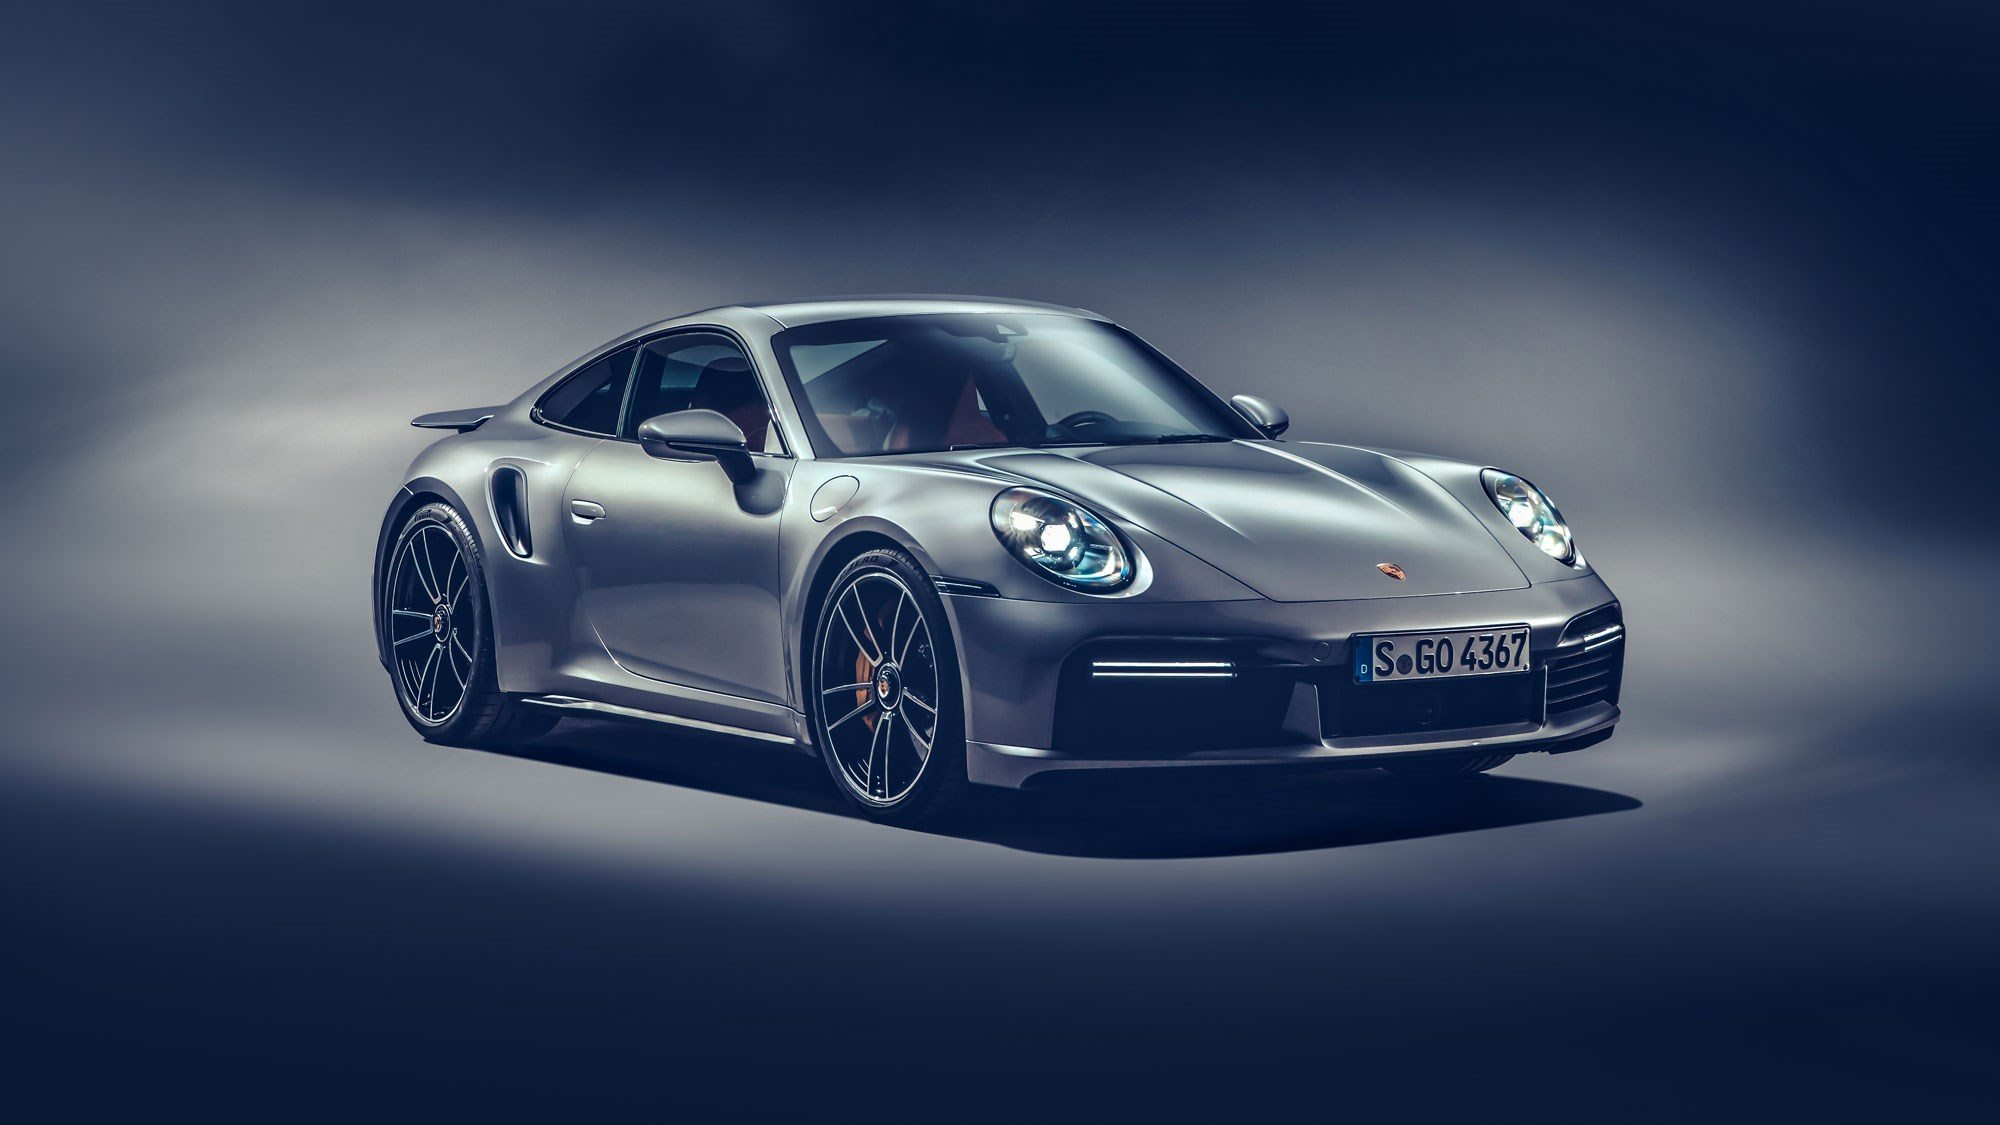 Porsche 911 Turbo S: The Most Powerful Turbo Ever